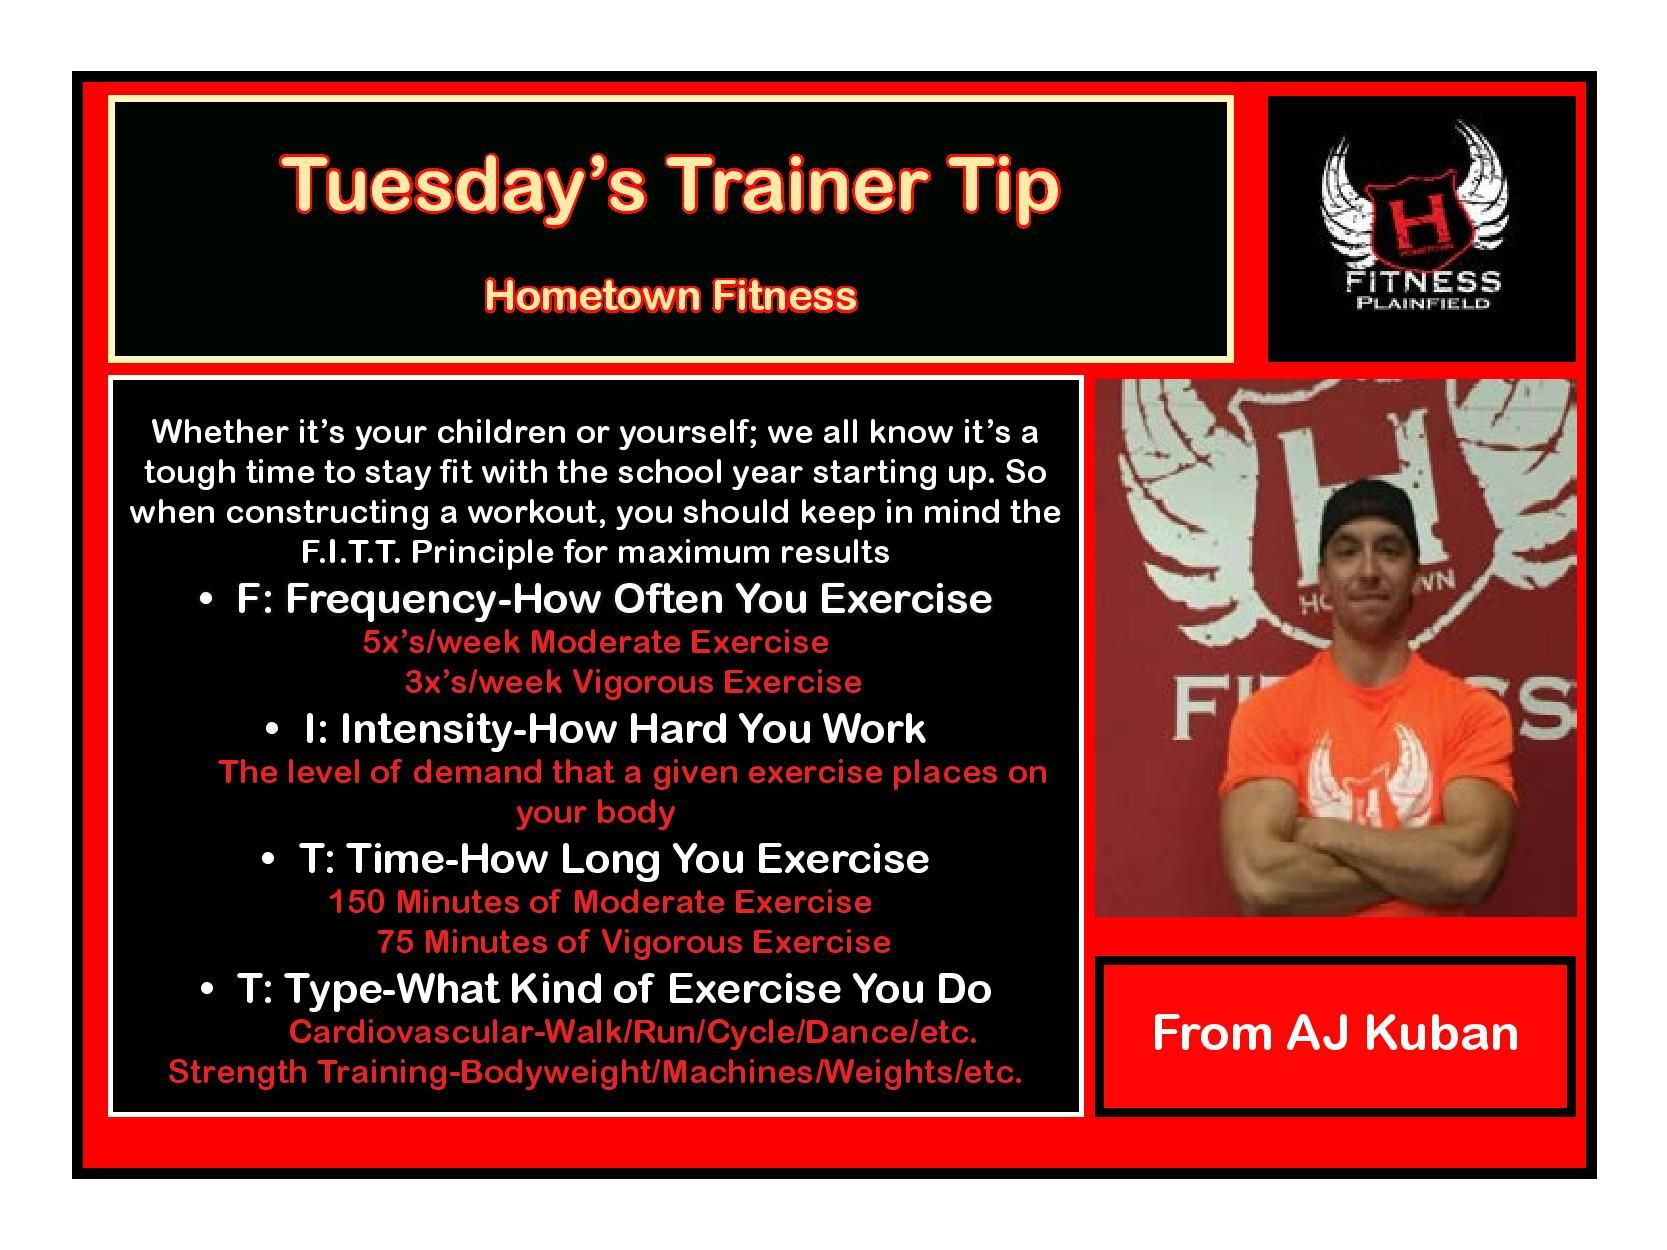 Pin By Hometown Fitness On Tuesday S Trainer Tips Fitness Advice Stay Fit Workout